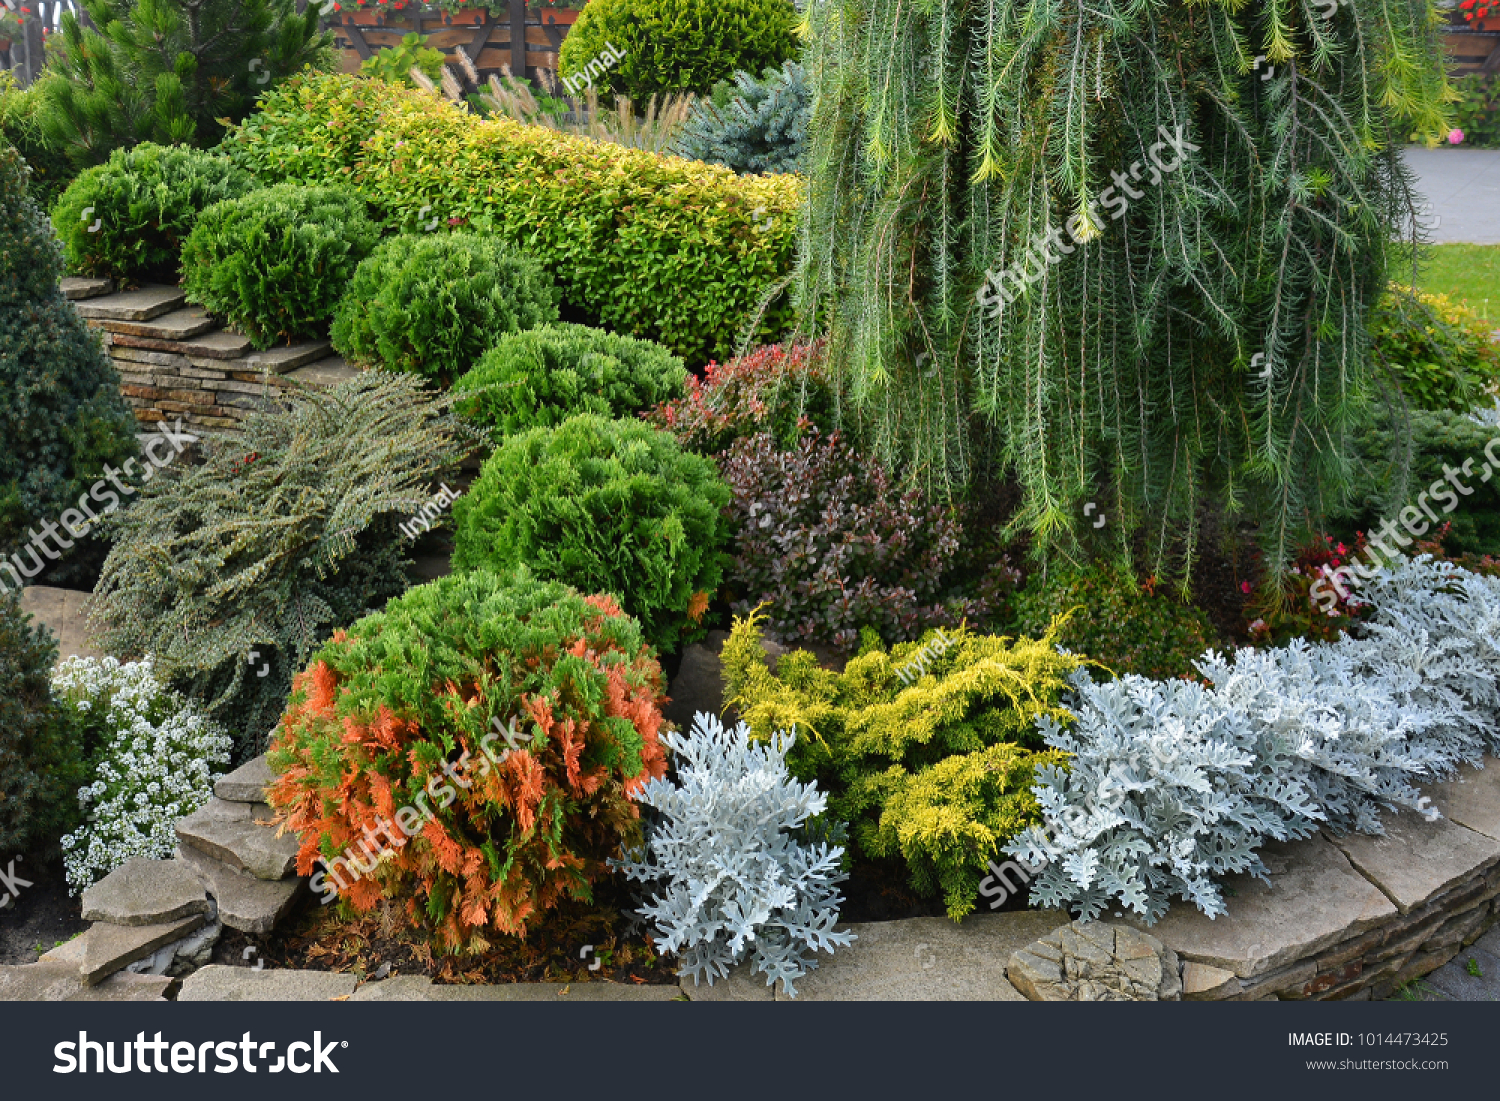 Flowerbed Decorative Trees Bushes Flowers Summer Stock Photo ...